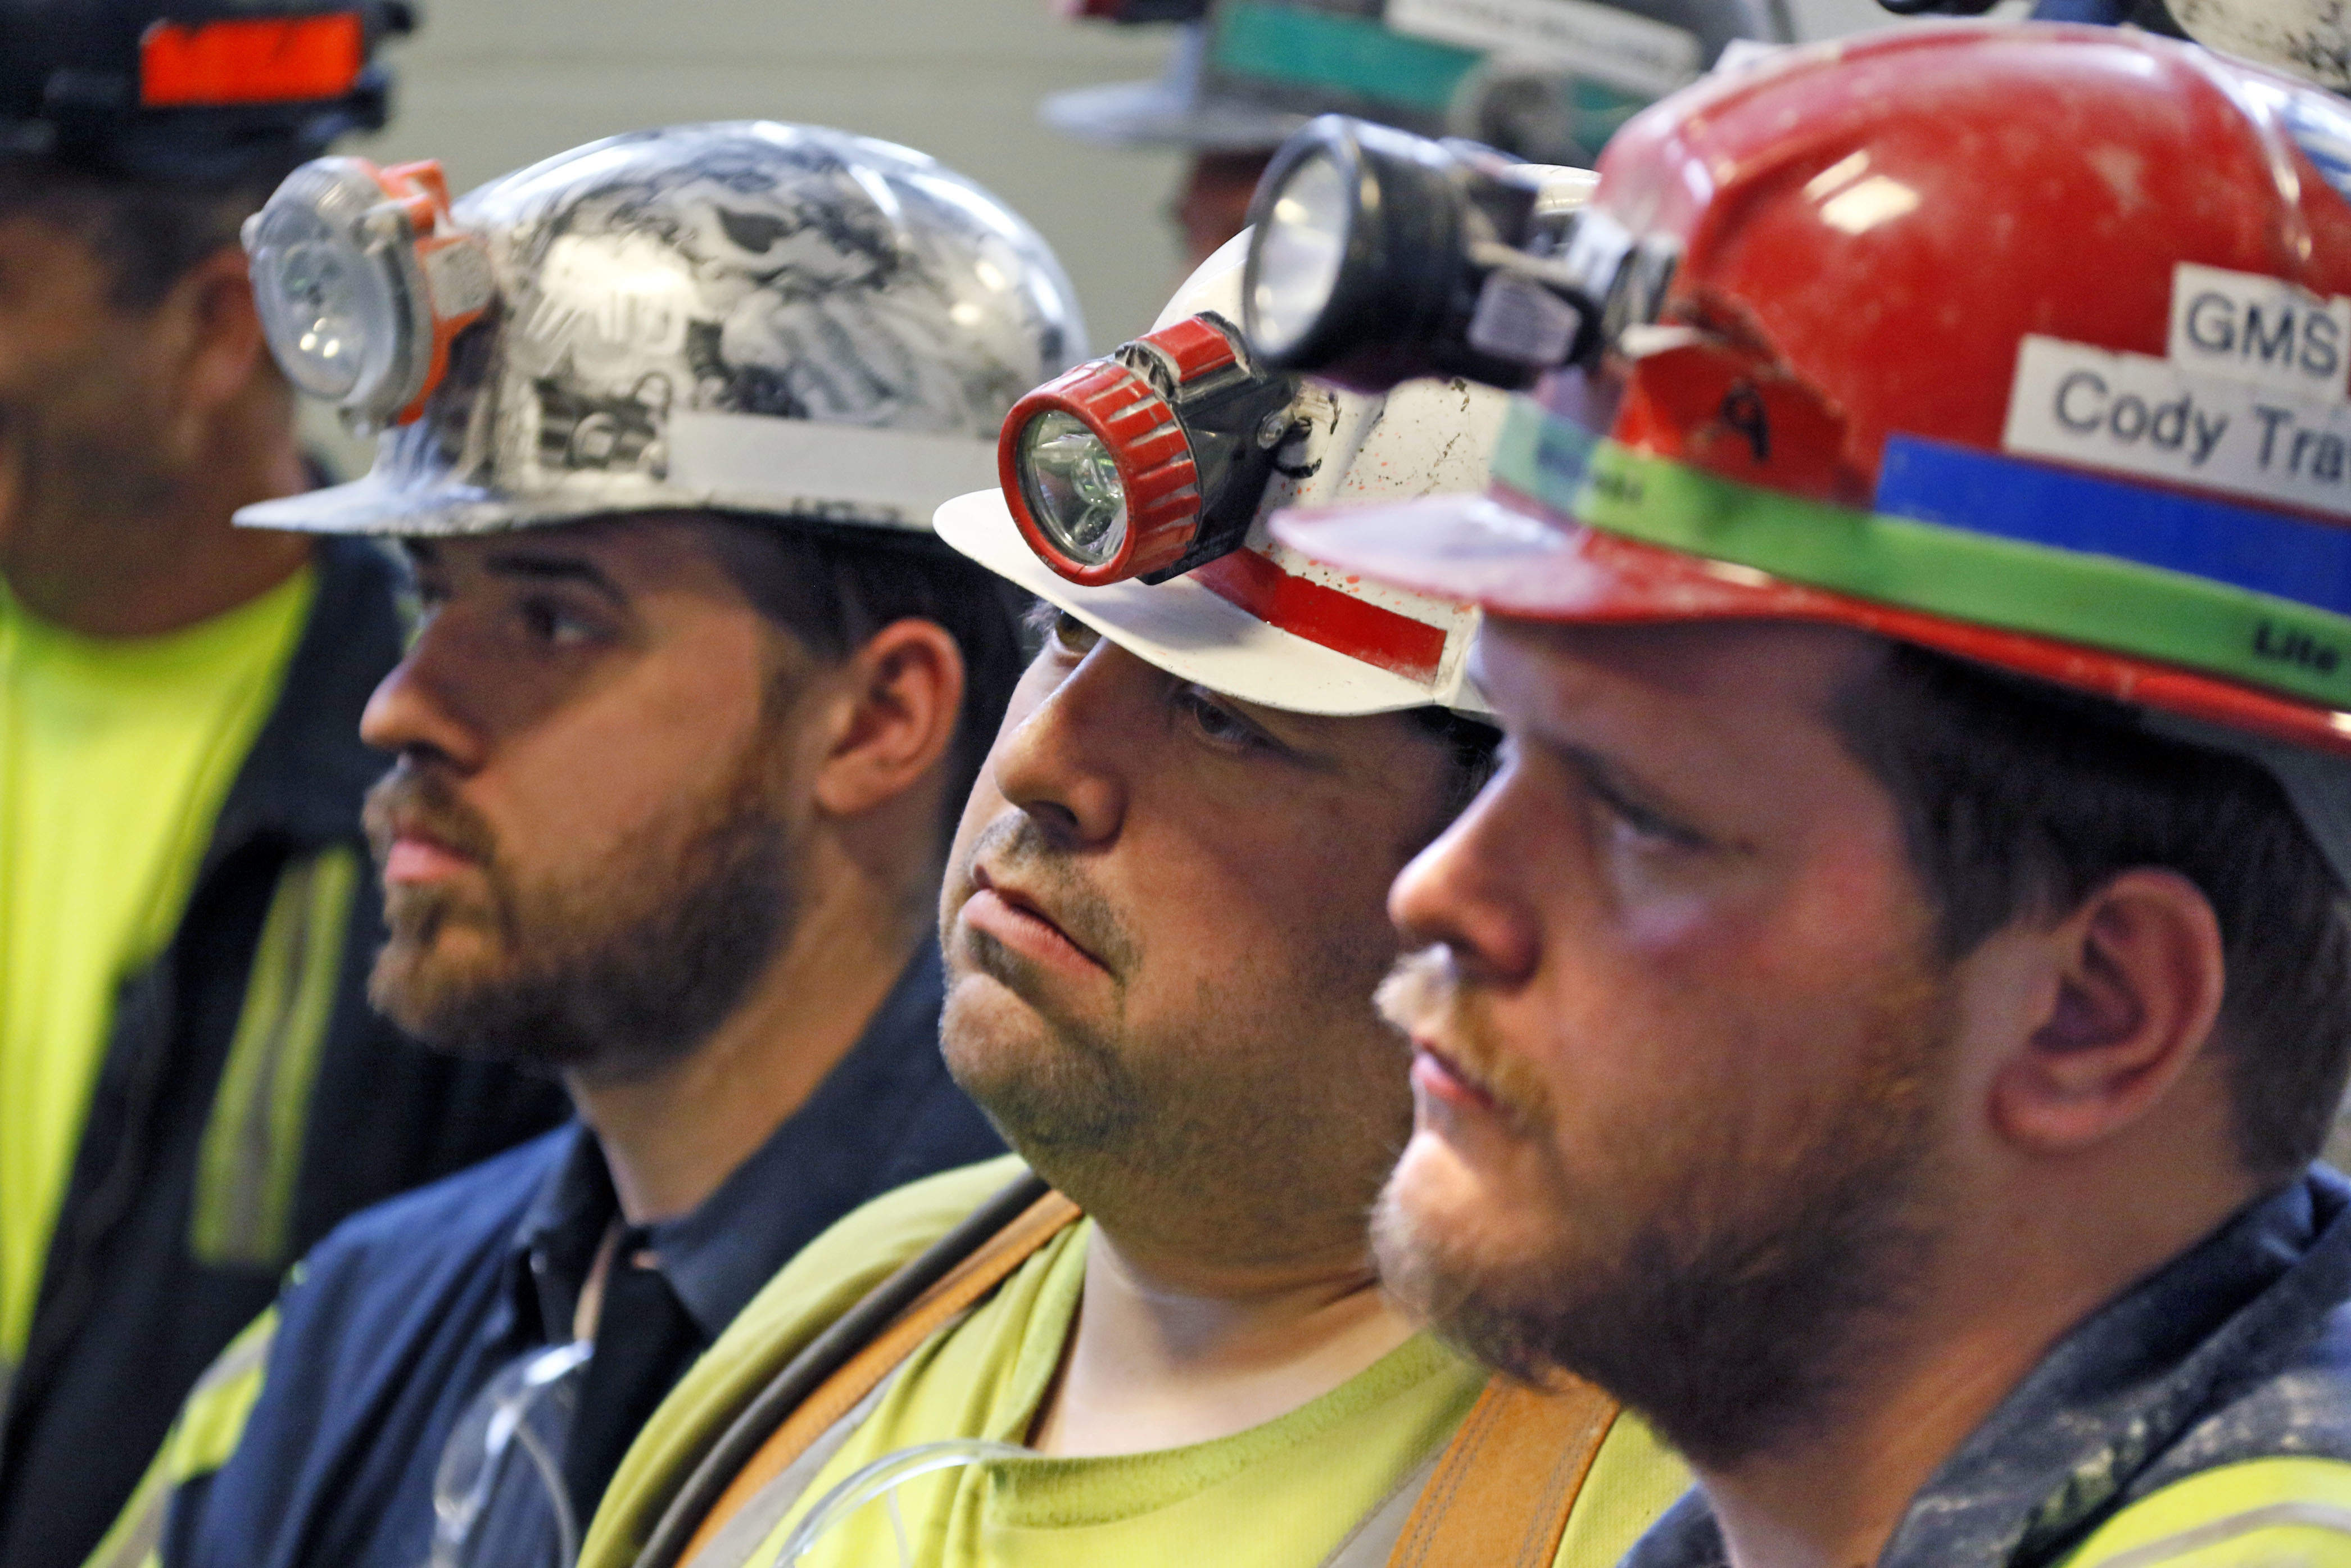 Pruitt EPA Coal Mine-3 A group of coal miners listen to U.S. Environmental Protection Agency Administrator Scott Pruitt during his visit to Consol Pennsylvania Coal Company's Harvey Mine in Sycamore, Pa., Thursday, April 13, 2017. (AP Photo/Gene J. Puskar)